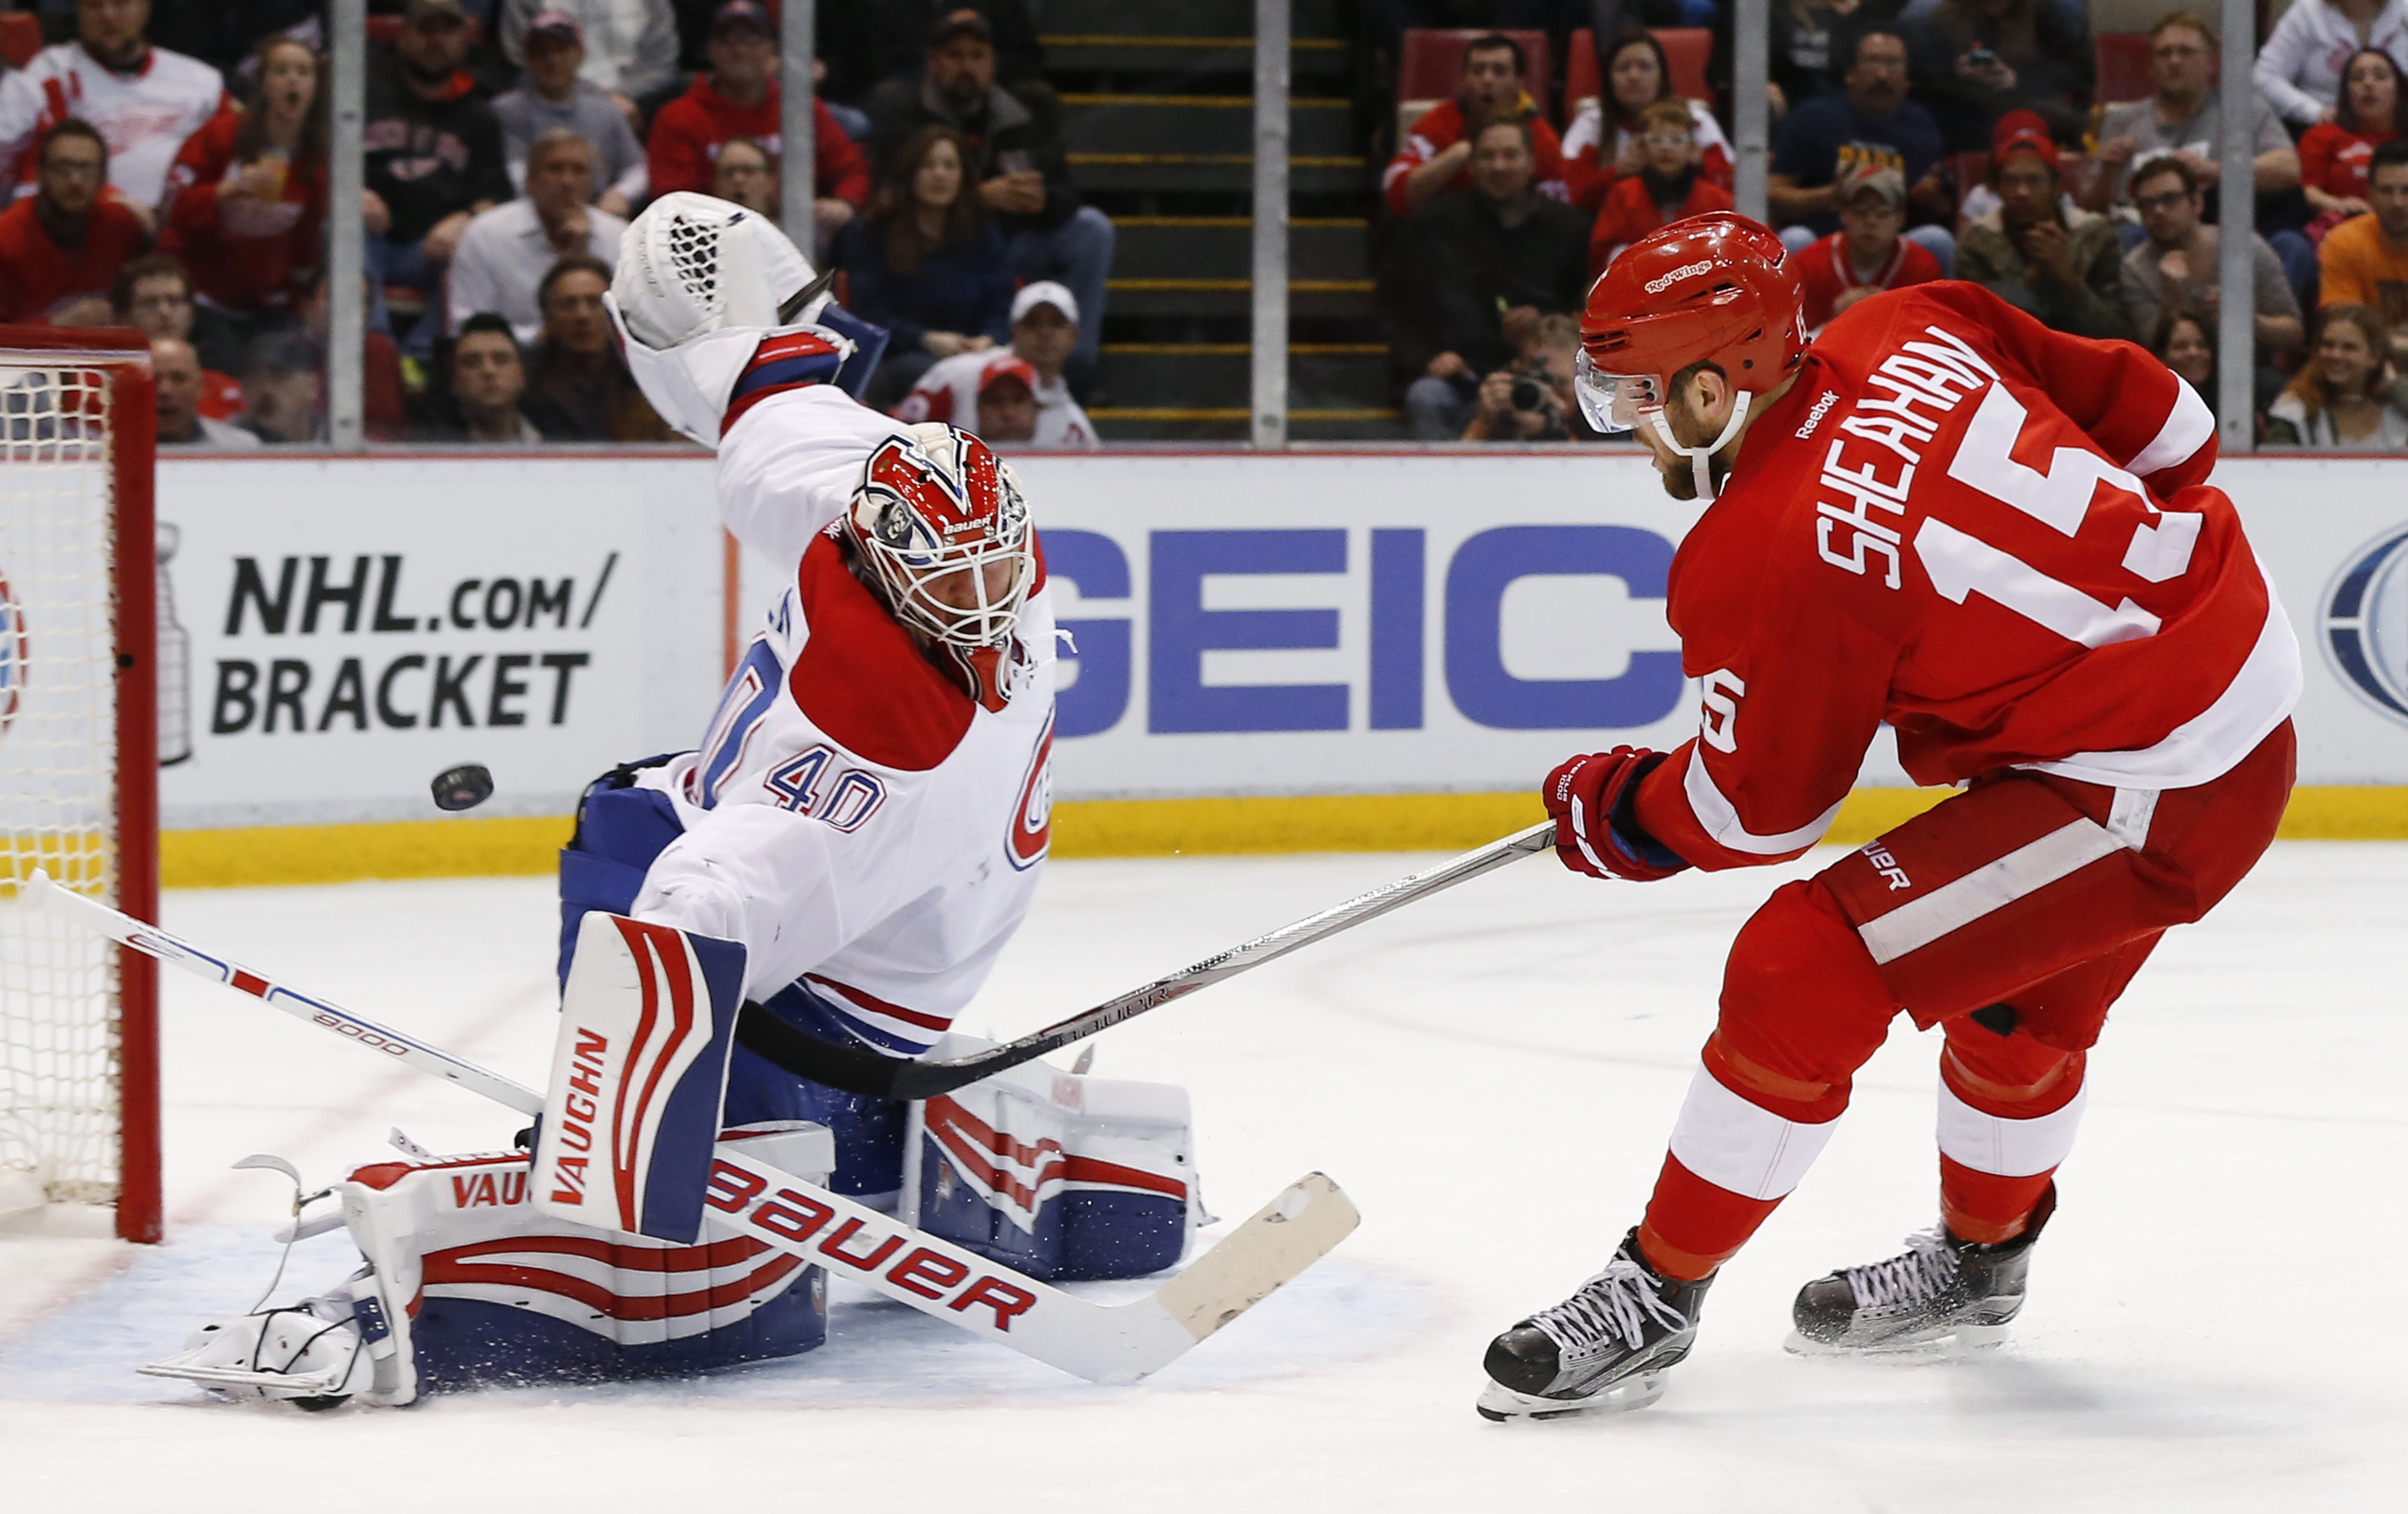 Detroit Red Wings center Riley Sheahan (15) scores on Montreal Canadiens goalie Ben Scrivens (40) in the second period of an NHL hockey game, Thursday, March 24, 2016 in Detroit. (AP Photo/Paul Sancya)